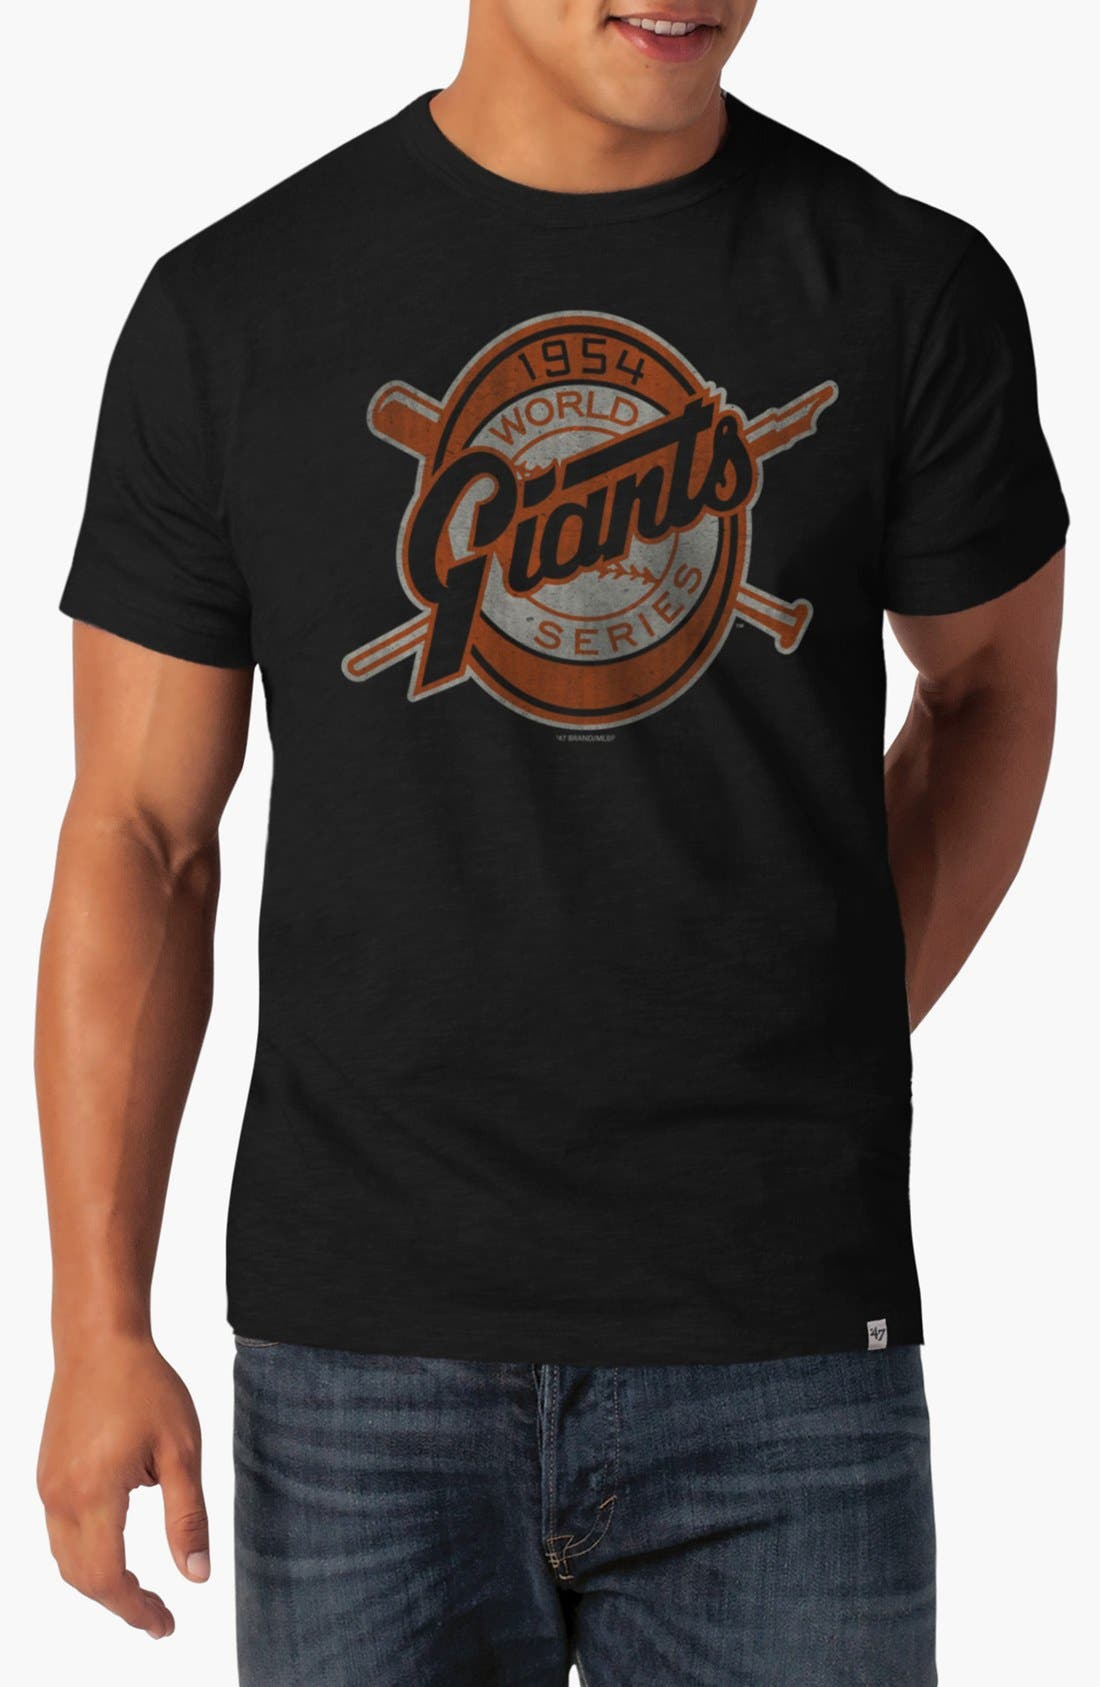 Alternate Image 1 Selected - Banner 47 'New York Giants World Series' Graphic T-Shirt